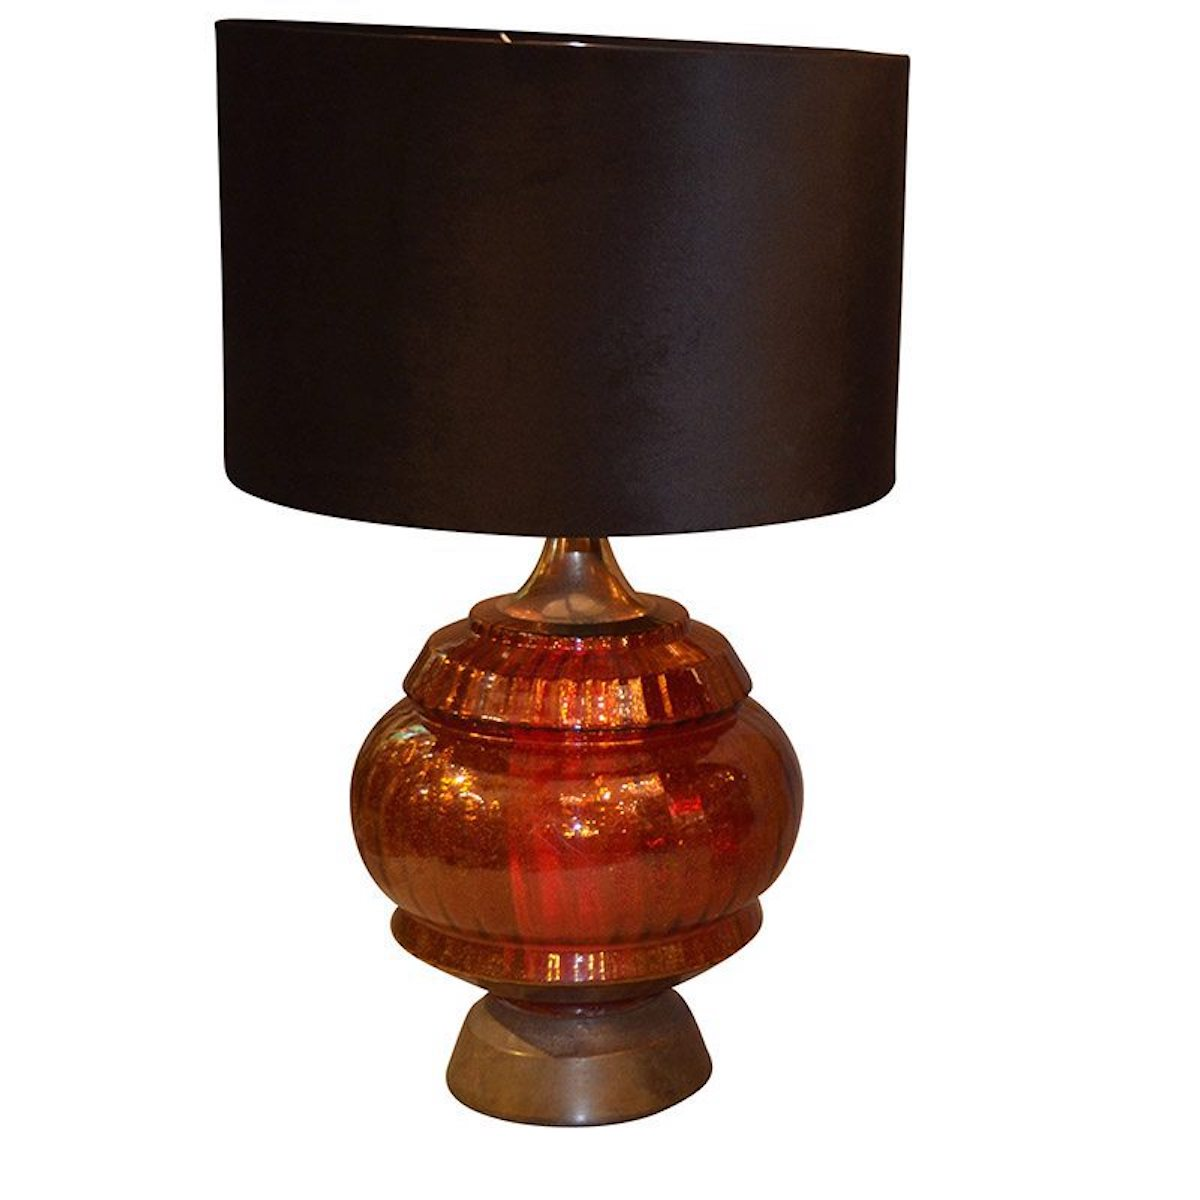 A Pair of Mid 20th Century Continental Red Glazed Lamps